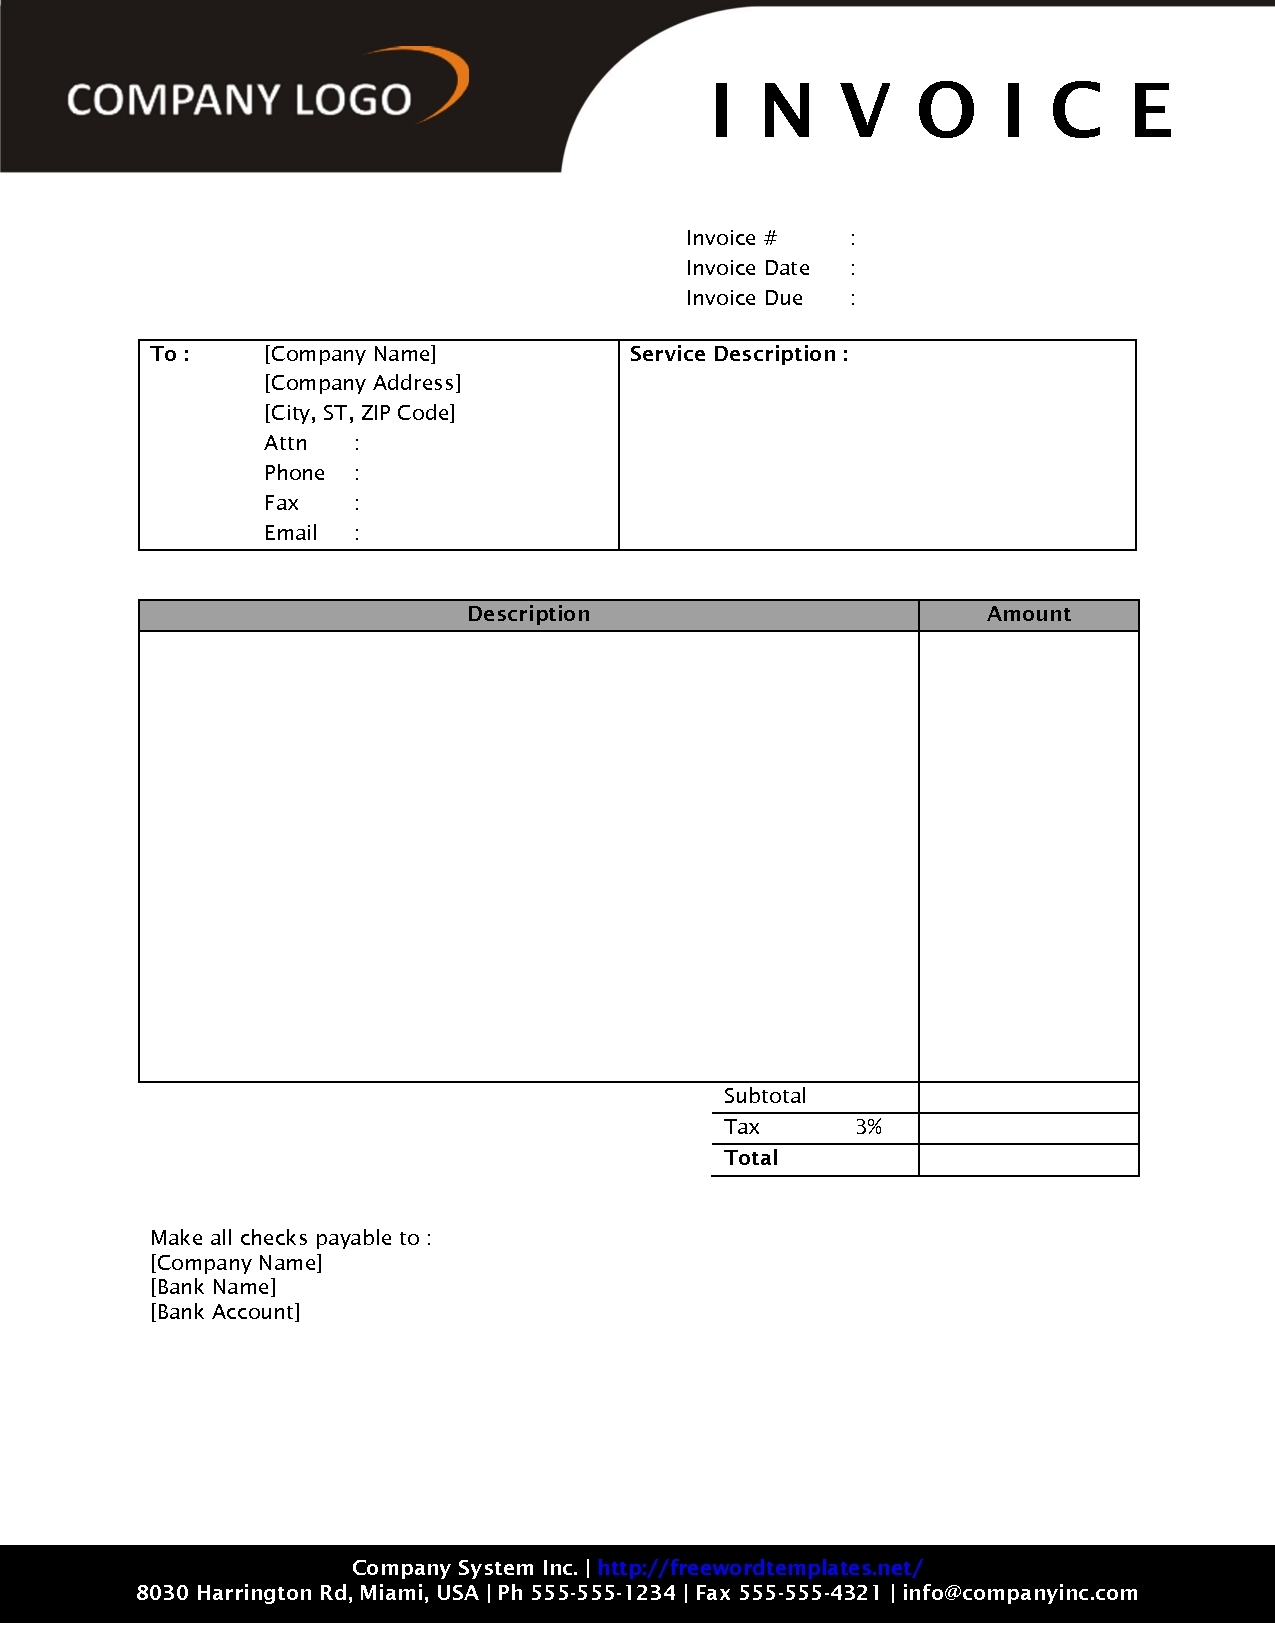 invoice download free invoice template ideas free invoice downloads